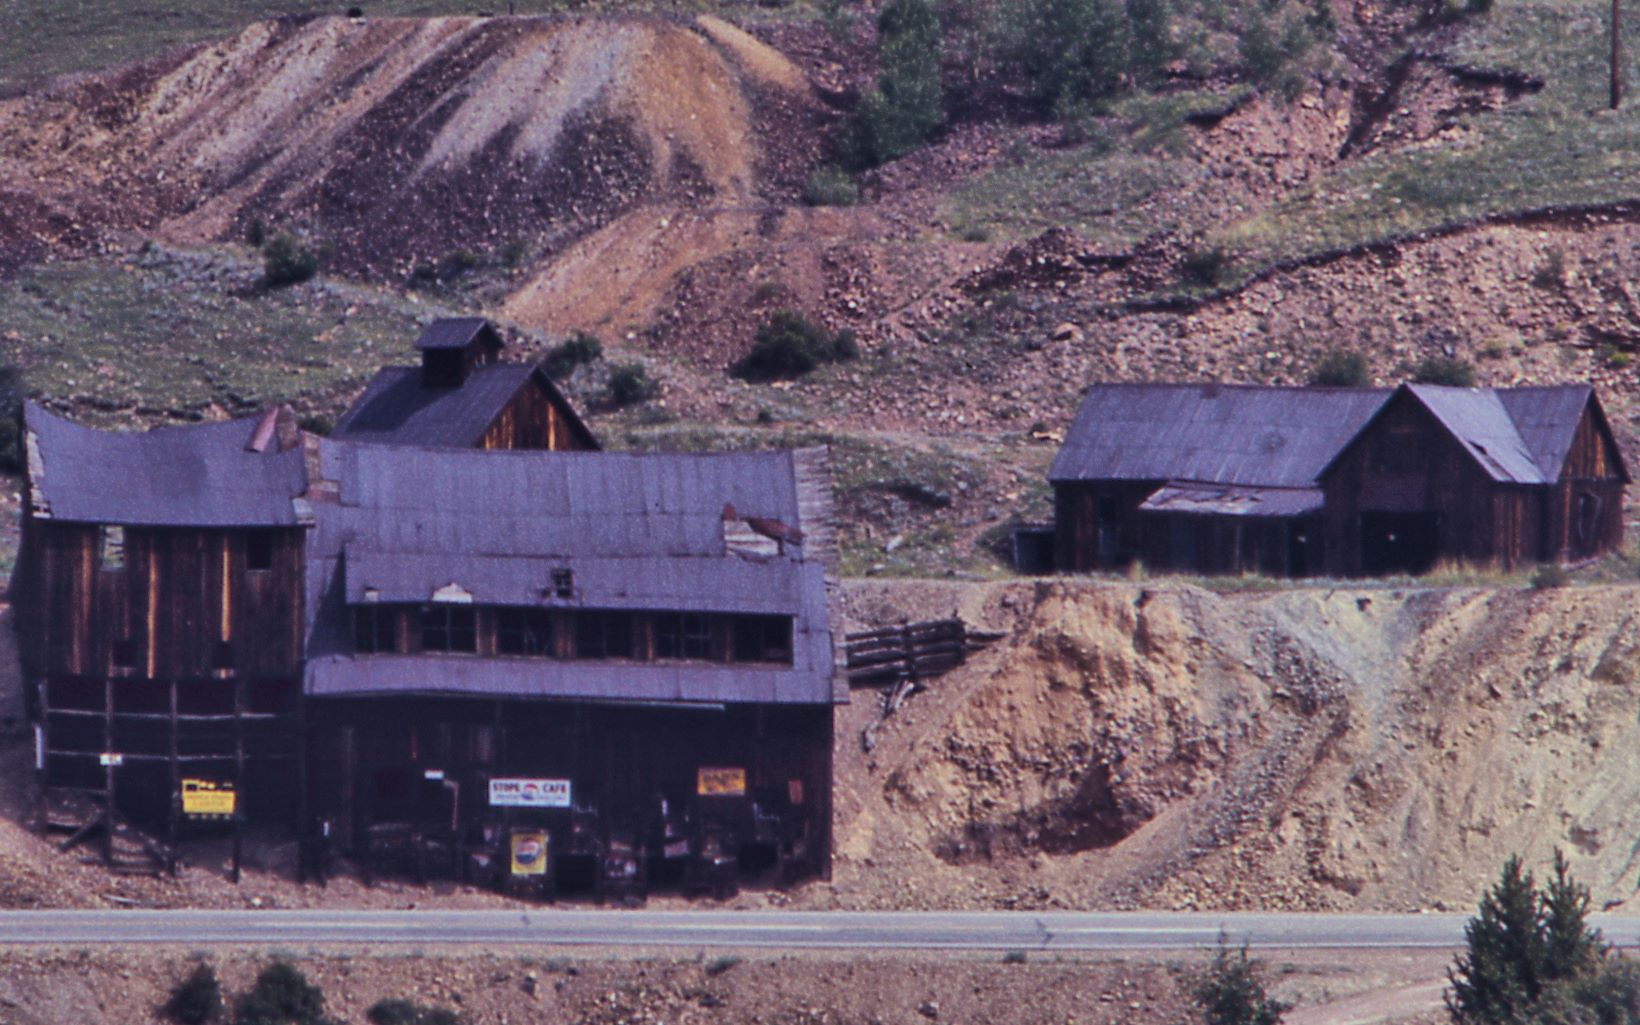 This cropped view of a slide photo from 1968 shows what is left of the Anaconda Mine structures. The Road in front of the Ore-House was the former F. & C.C. roadbed, which turned into a road when that railroad was gone, and which was later the main road between Victor and Cripple Creek towns, but today all this is gone, road and everything.    Closest to the road is the Anaconda mine Orehouse, with the Blacksmith and its cupola visible behind it, and to the right is what appears to be a tunnel opening, just left of what appears to possible be the Powerplant Structure when looking at a Sanborn 1908 Fire Insurance Map, or the Office, maybe also just be a shed like structure. Behind the structures is the former roadbed of the Midland Terminal seen, at about middle top/down, coming from left-hand side, and entering a cut behind the shed/possible powerplant structure, at the right-hand side.